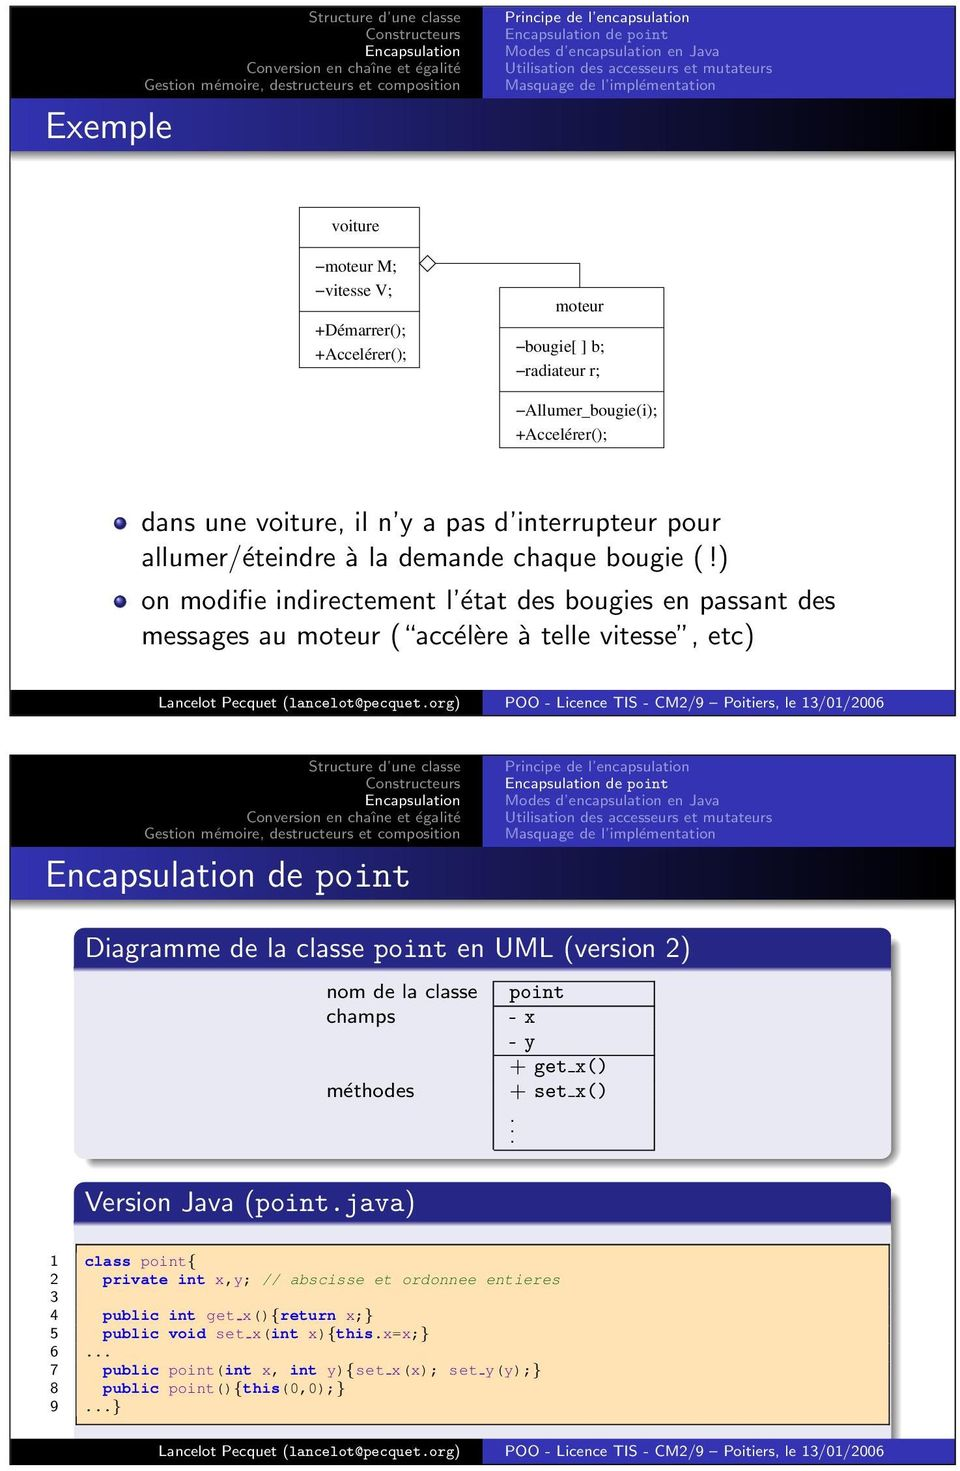 ) on modifie indirectement l état des bougies en passant des messages au moteur ( accélère à telle vitesse, etc) de point Principe de l encapsulation de point Modes d encapsulation en Java